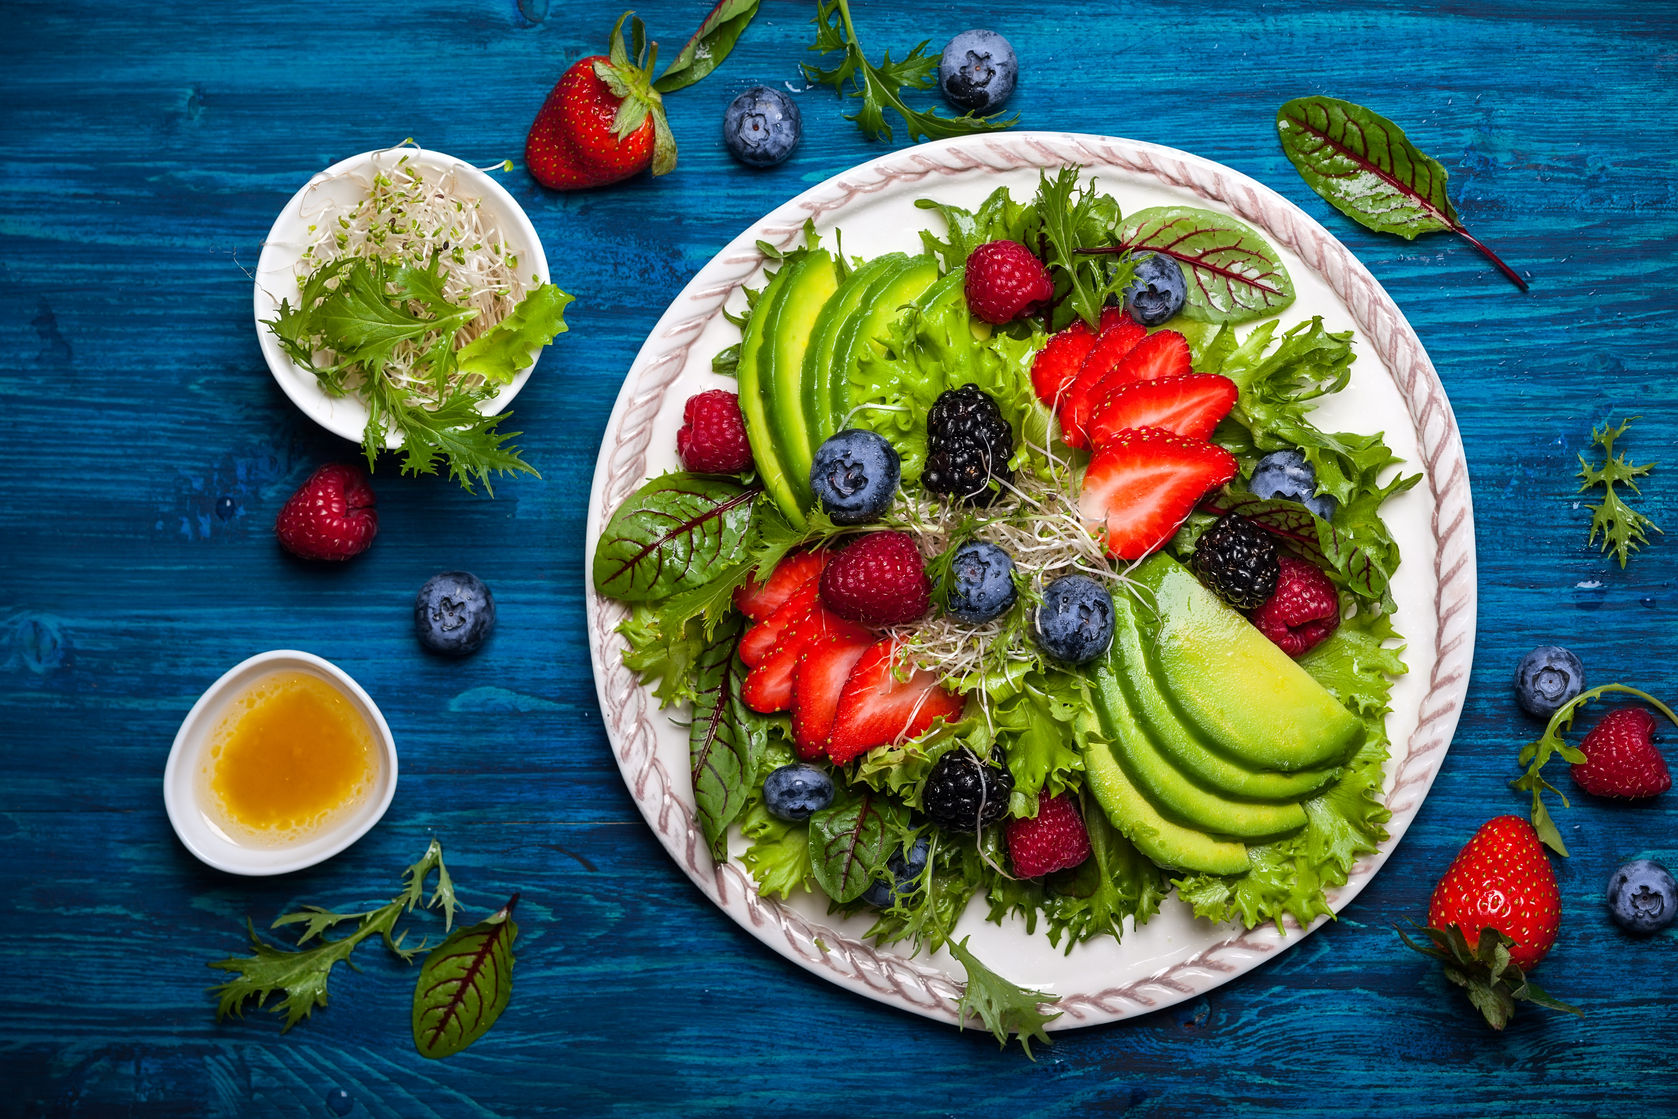 Avocado, mixed salad leaves, with berries and honey mustard dressing https://www.info-on-high-blood-pressure.com/Eat-Well.html